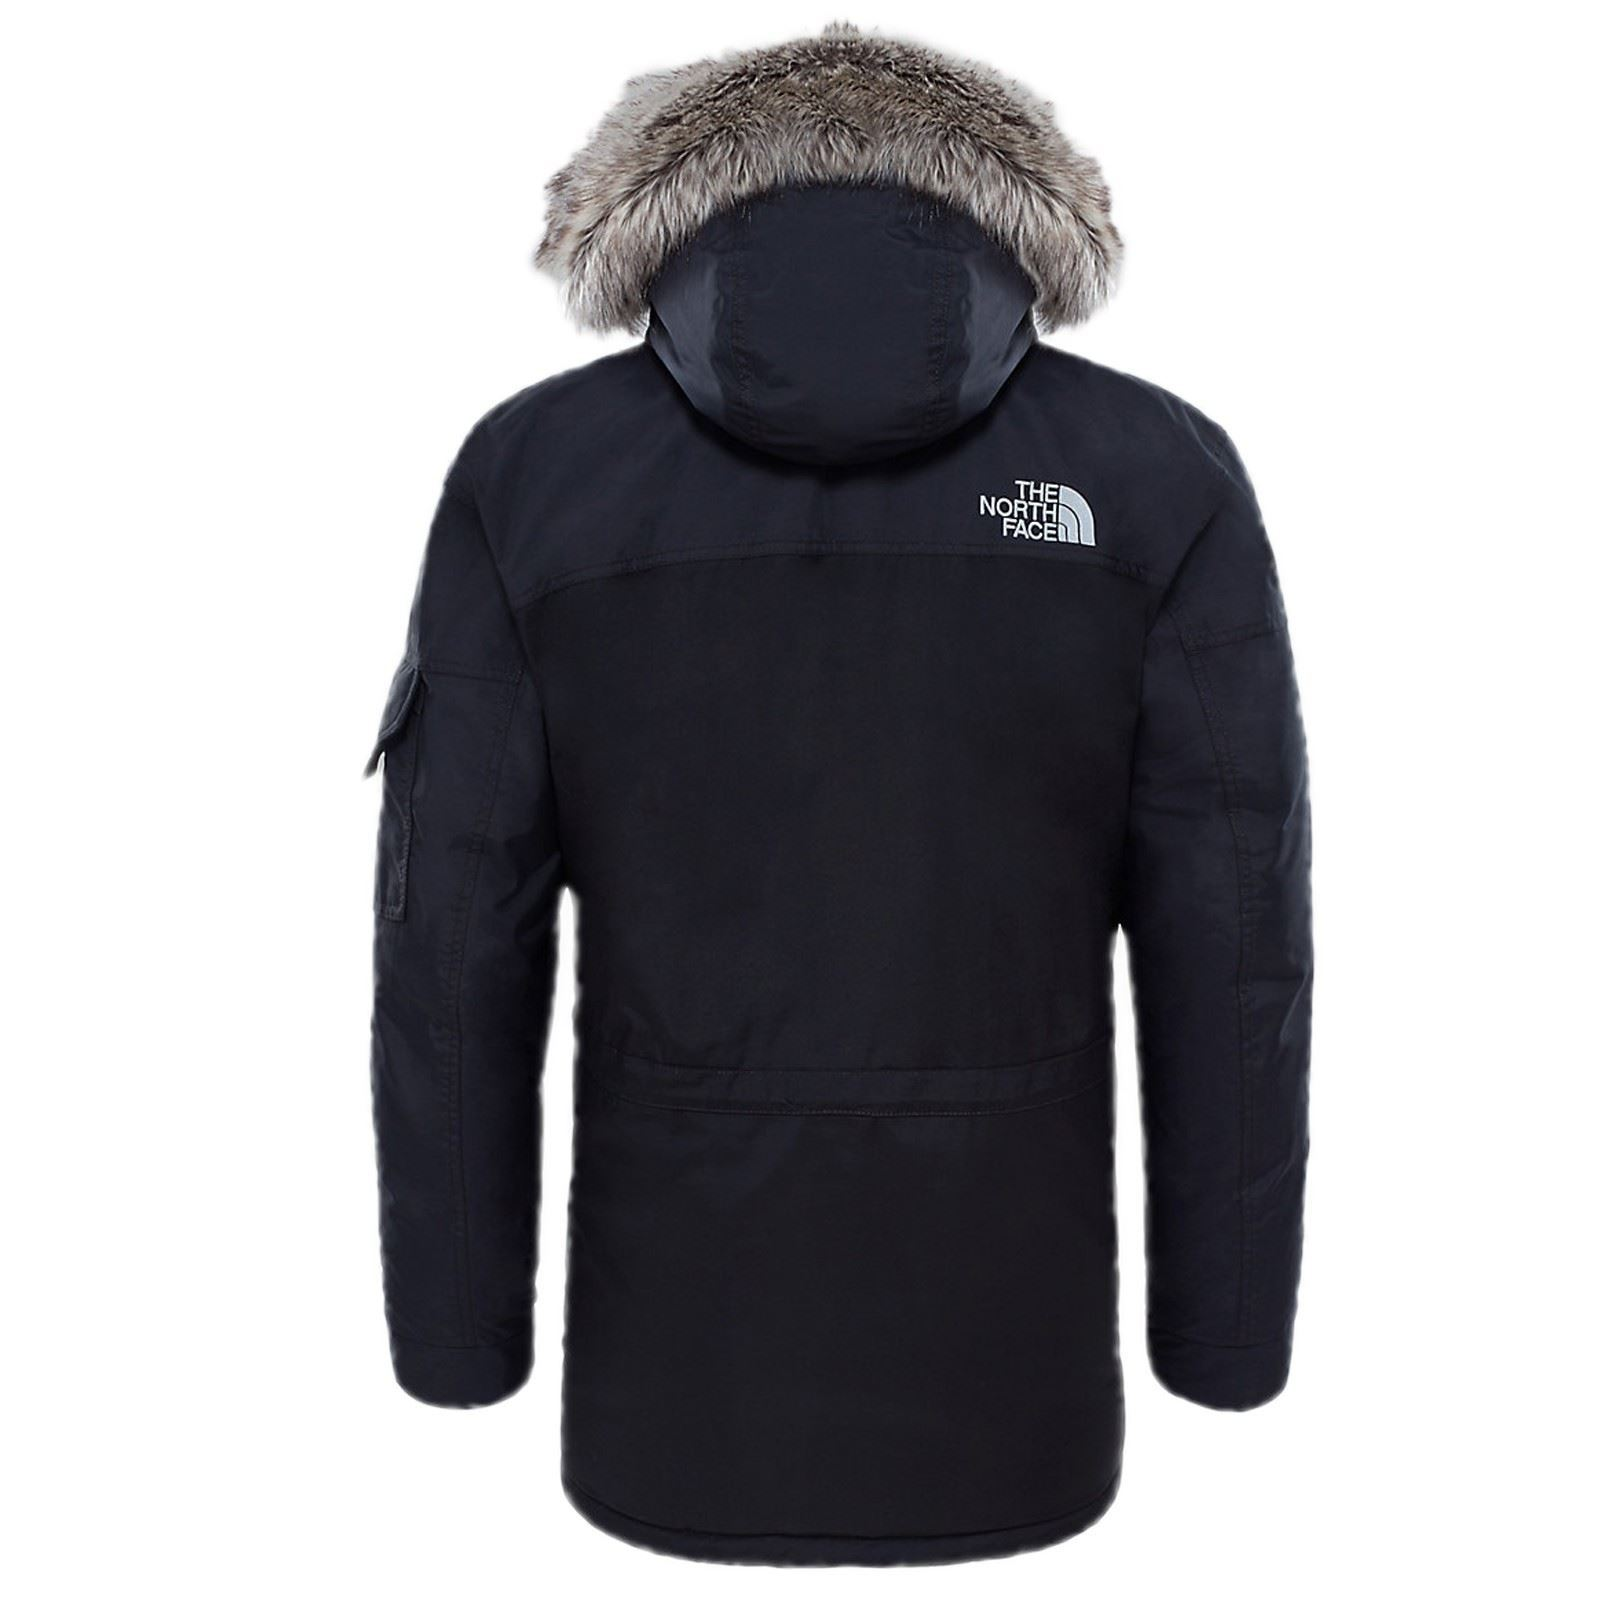 46d1c2aede The North Face Doudoune - noir | BrandAlley